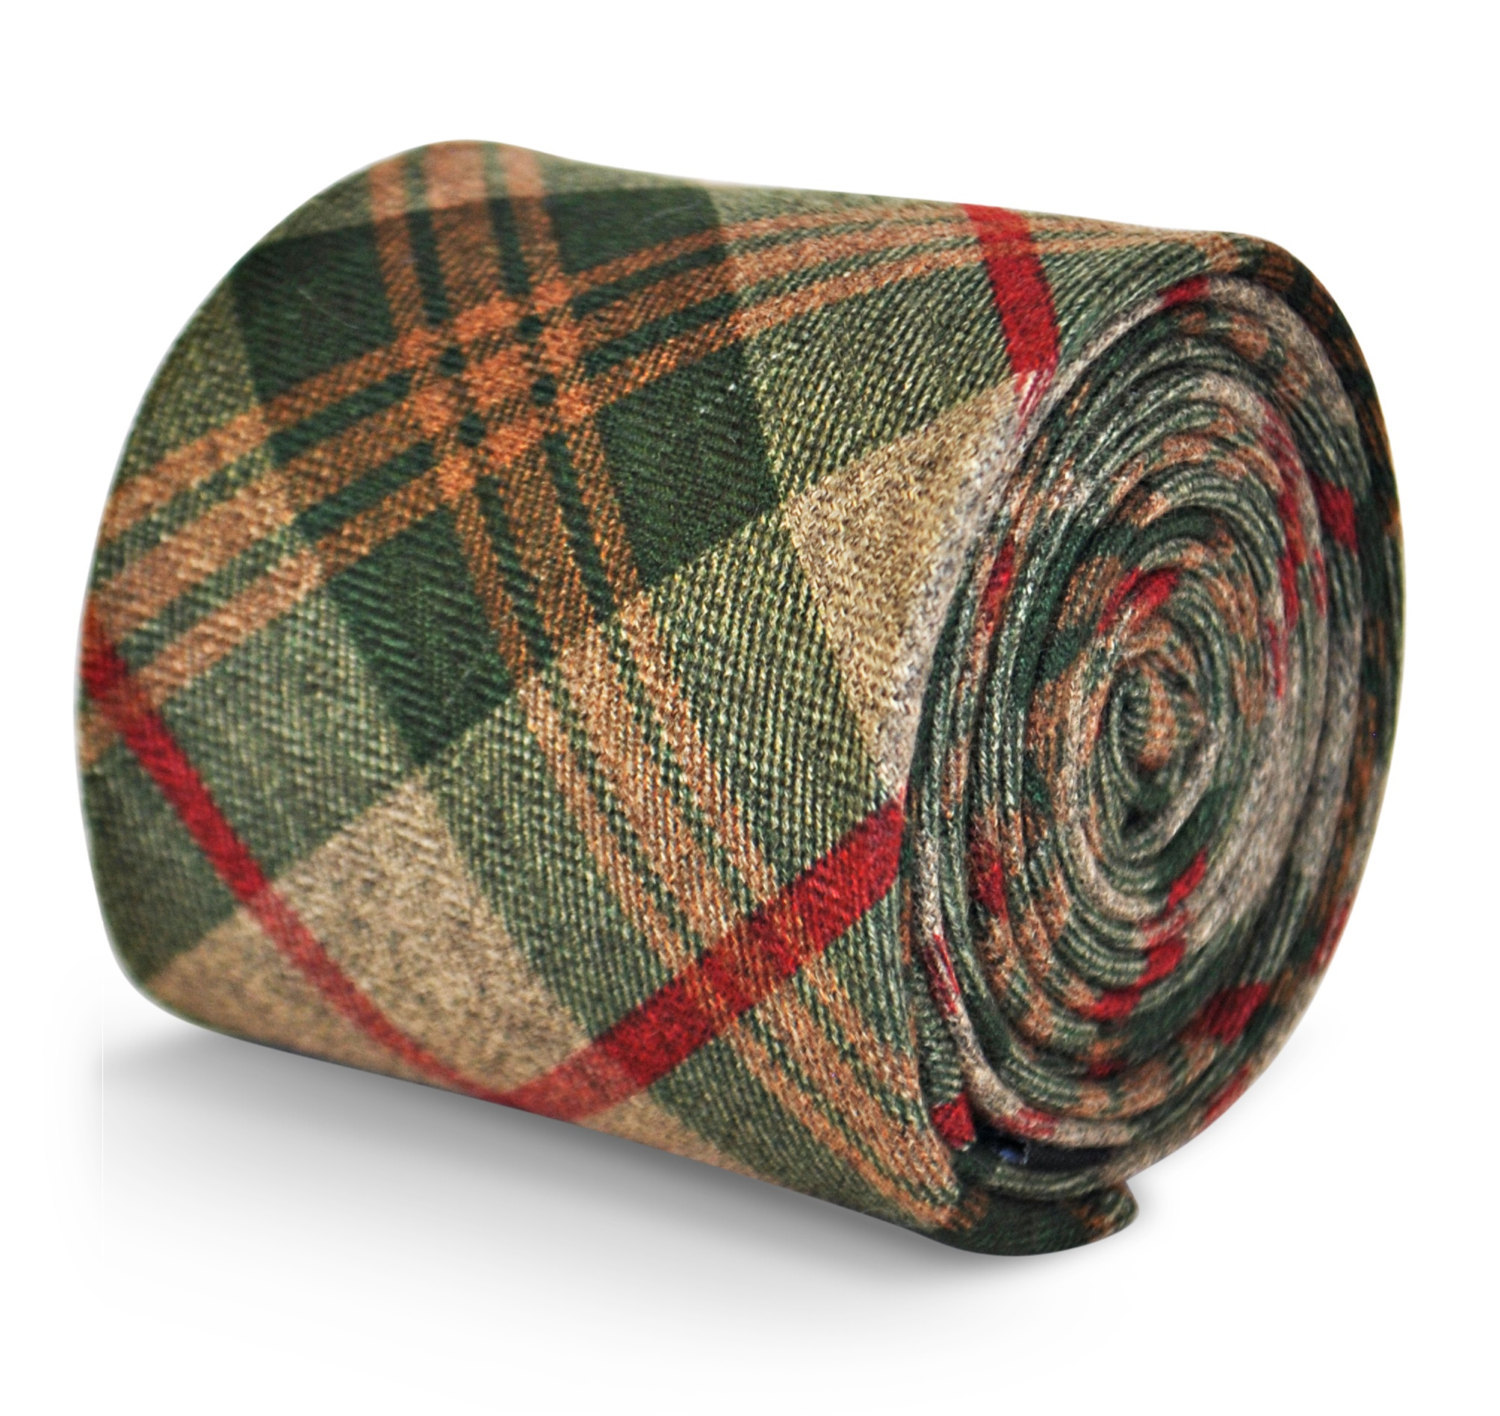 Frederick Thomas mens wool tweed tie in green, brown & red check FT3144